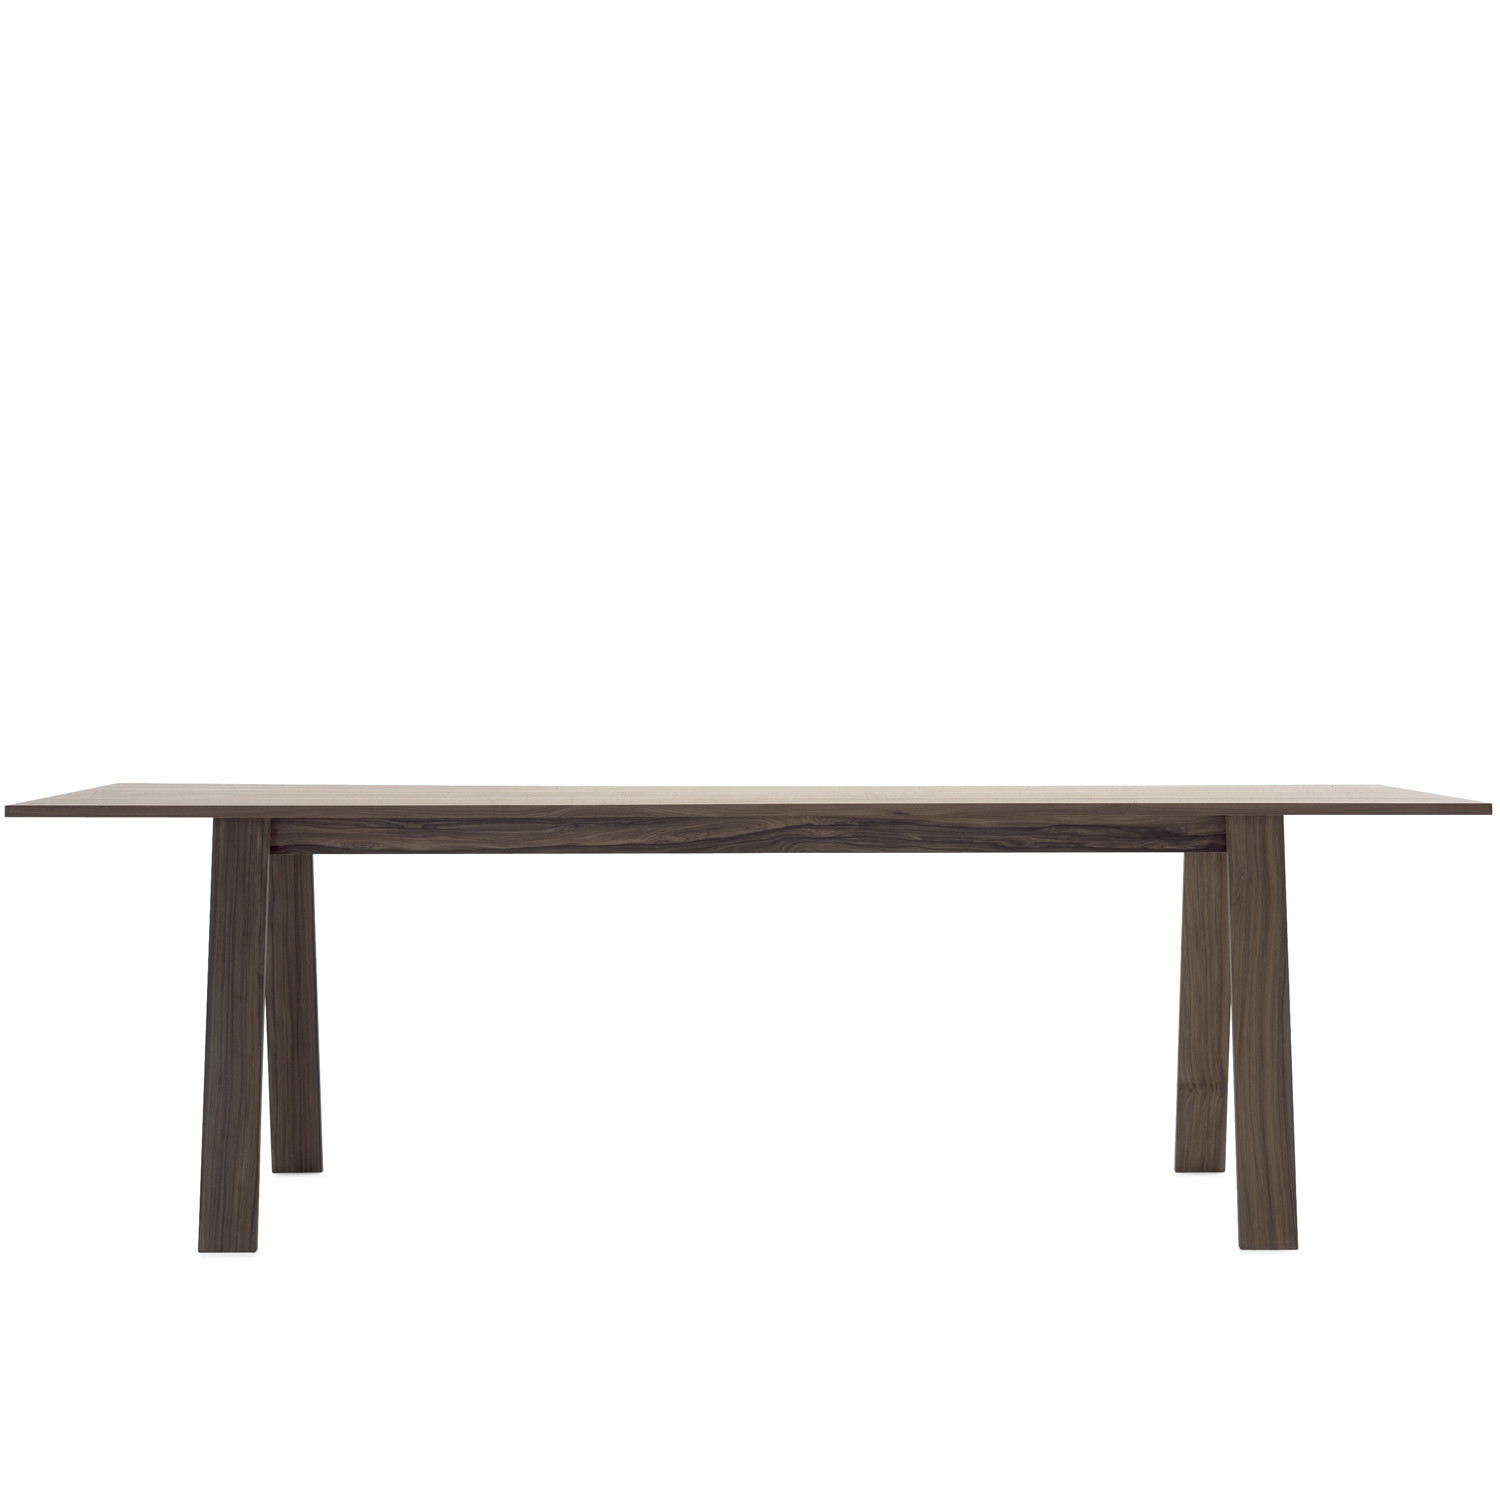 Bac Table by Cappellini